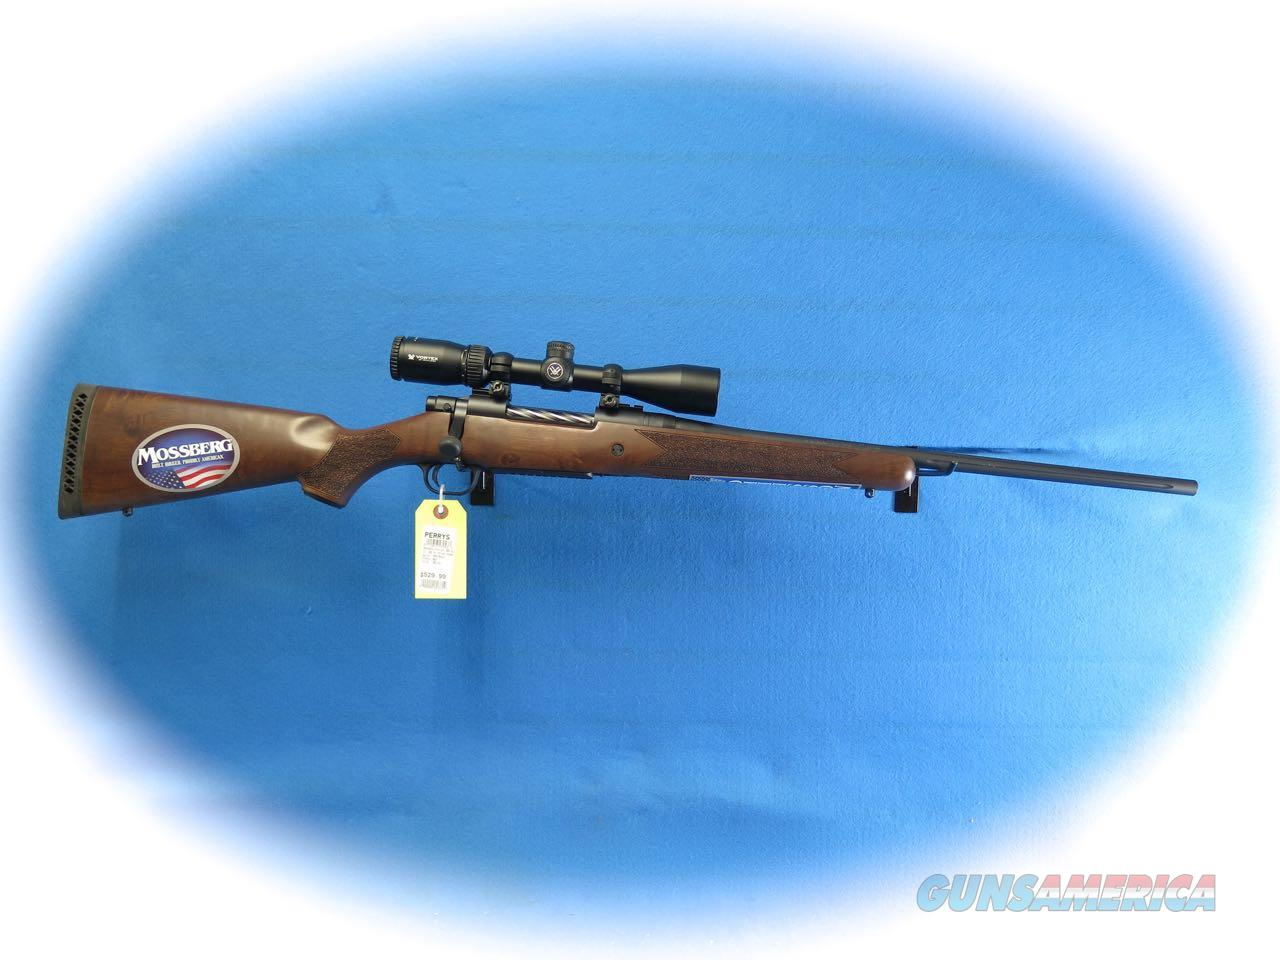 Mossberg Patriot Bolt Action Rifle/Scope Pkg .300 WinMag Model 27943 **New**  Guns > Rifles > Mossberg Rifles > Other Bolt Action